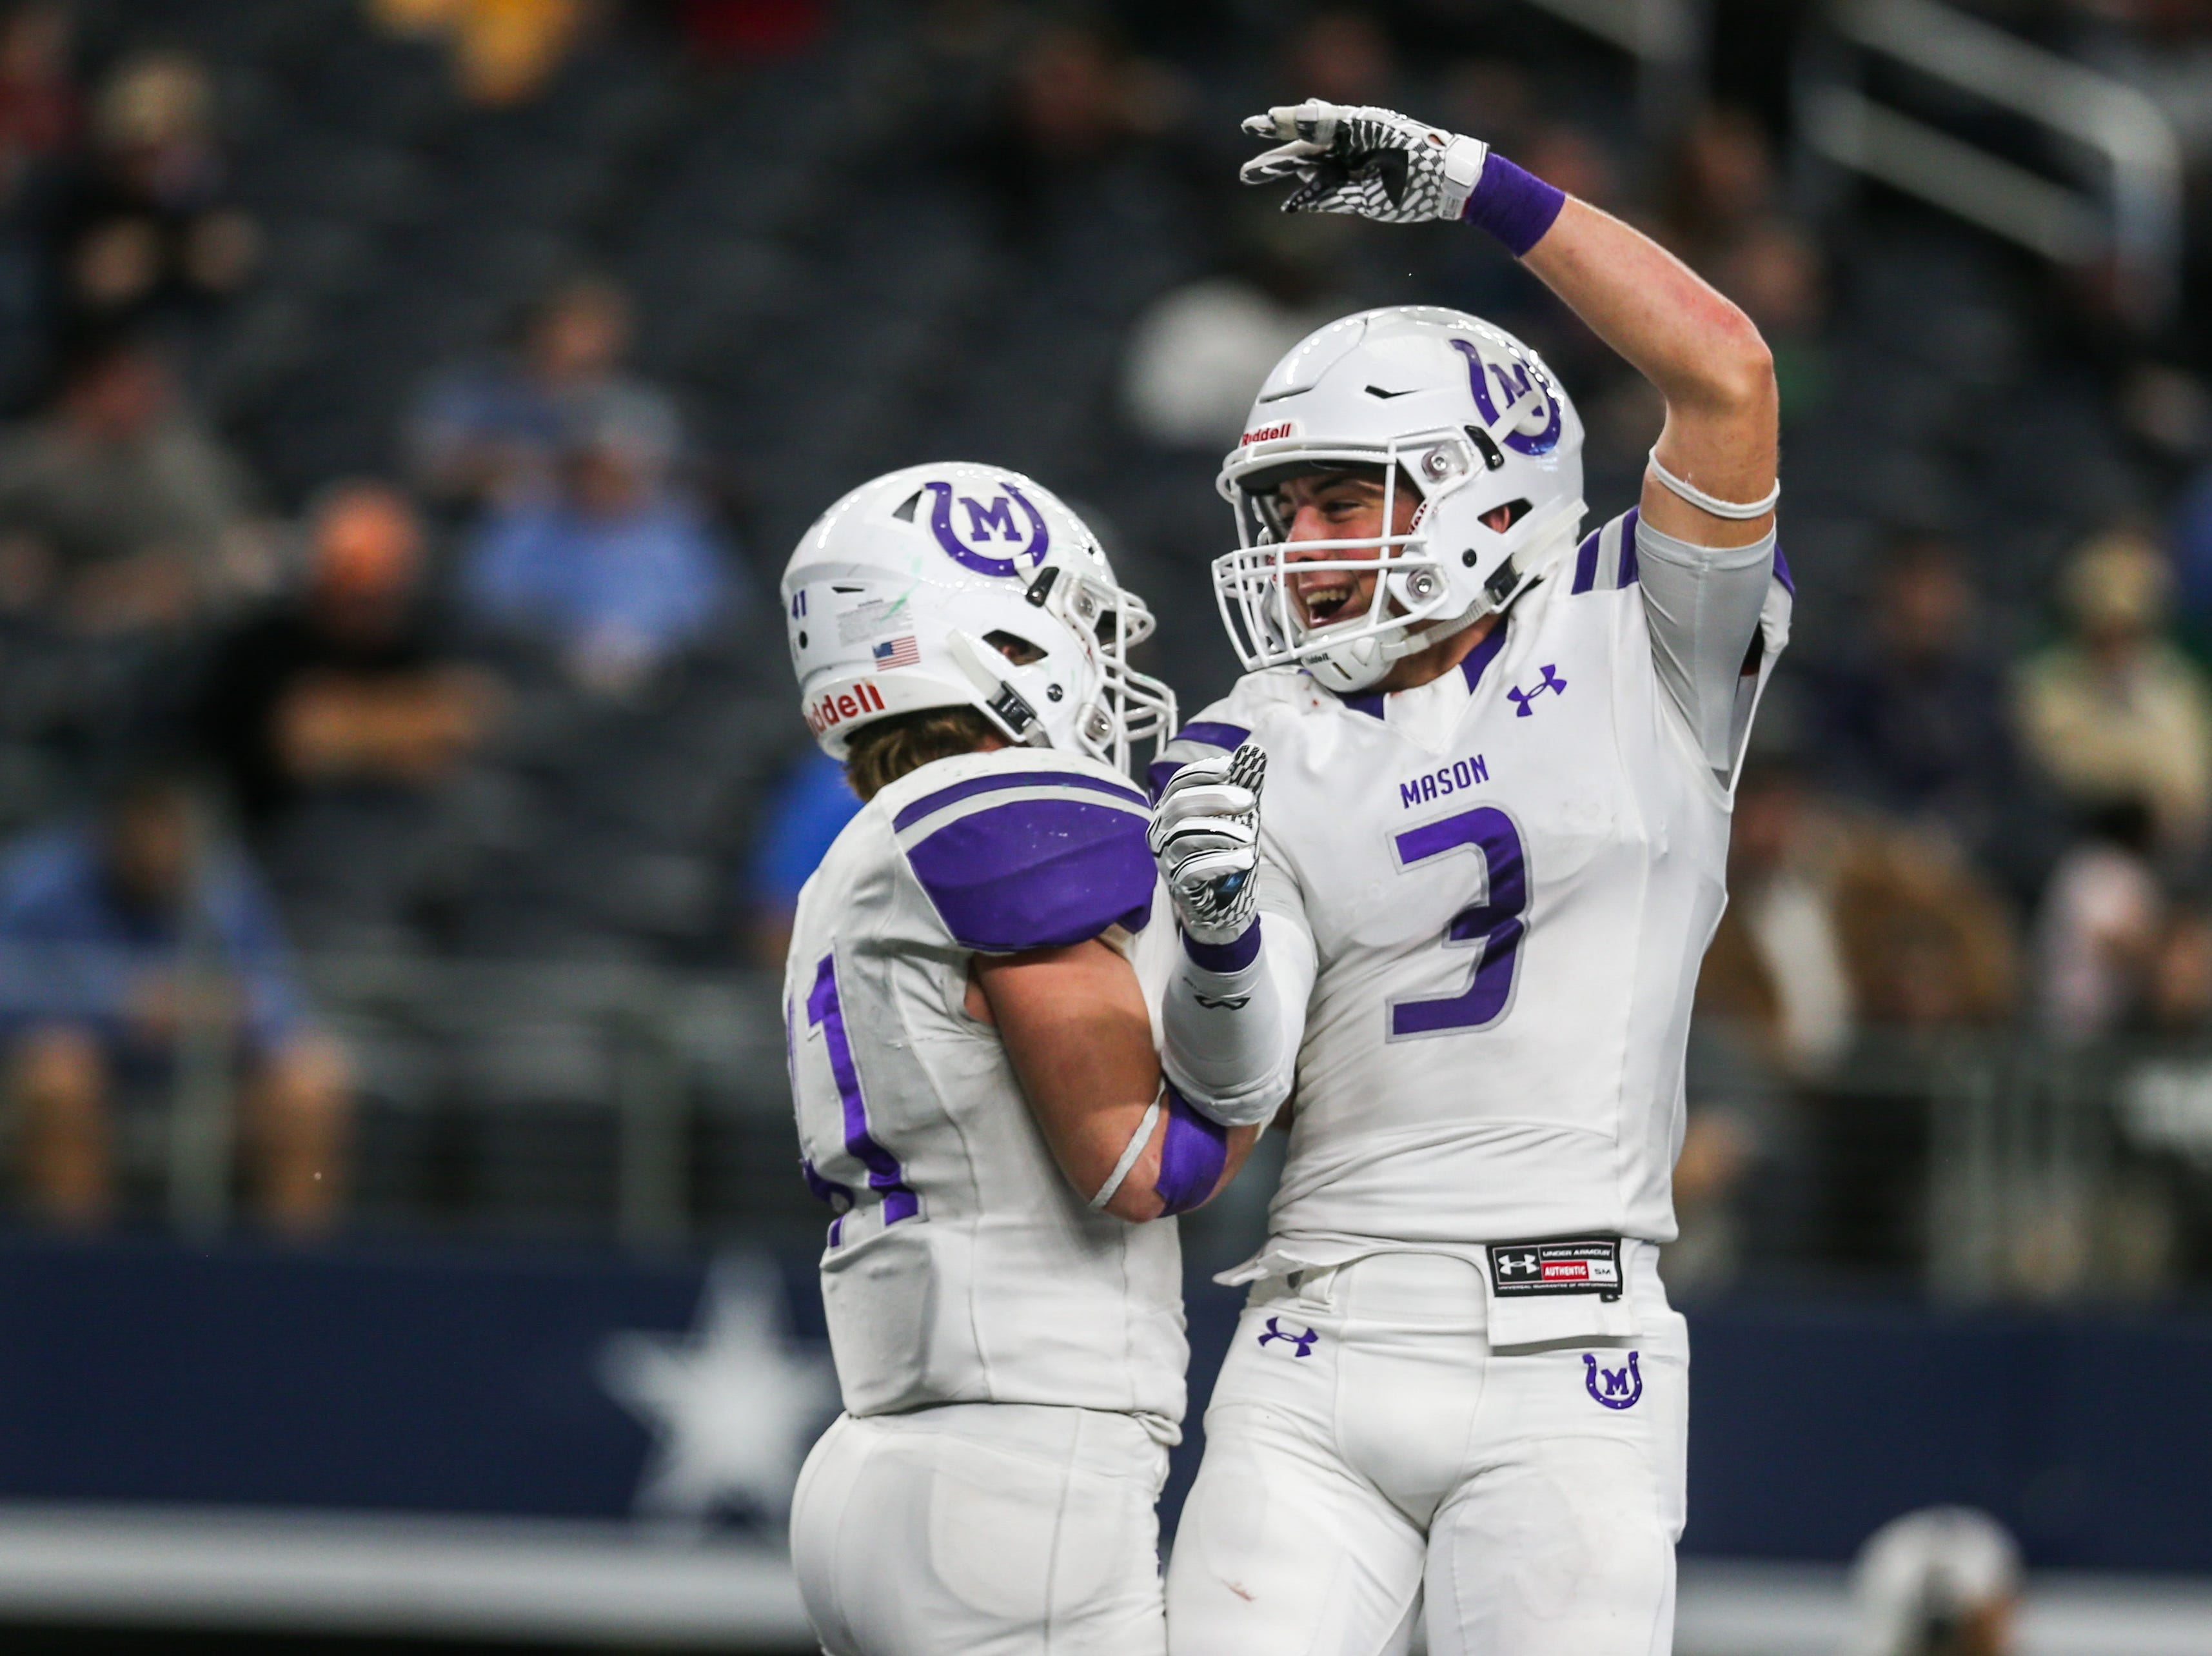 Mason players celebrate a touchdown during the state finals game against New Deal Thursday, Dec. 20, at the AT&T Stadium.